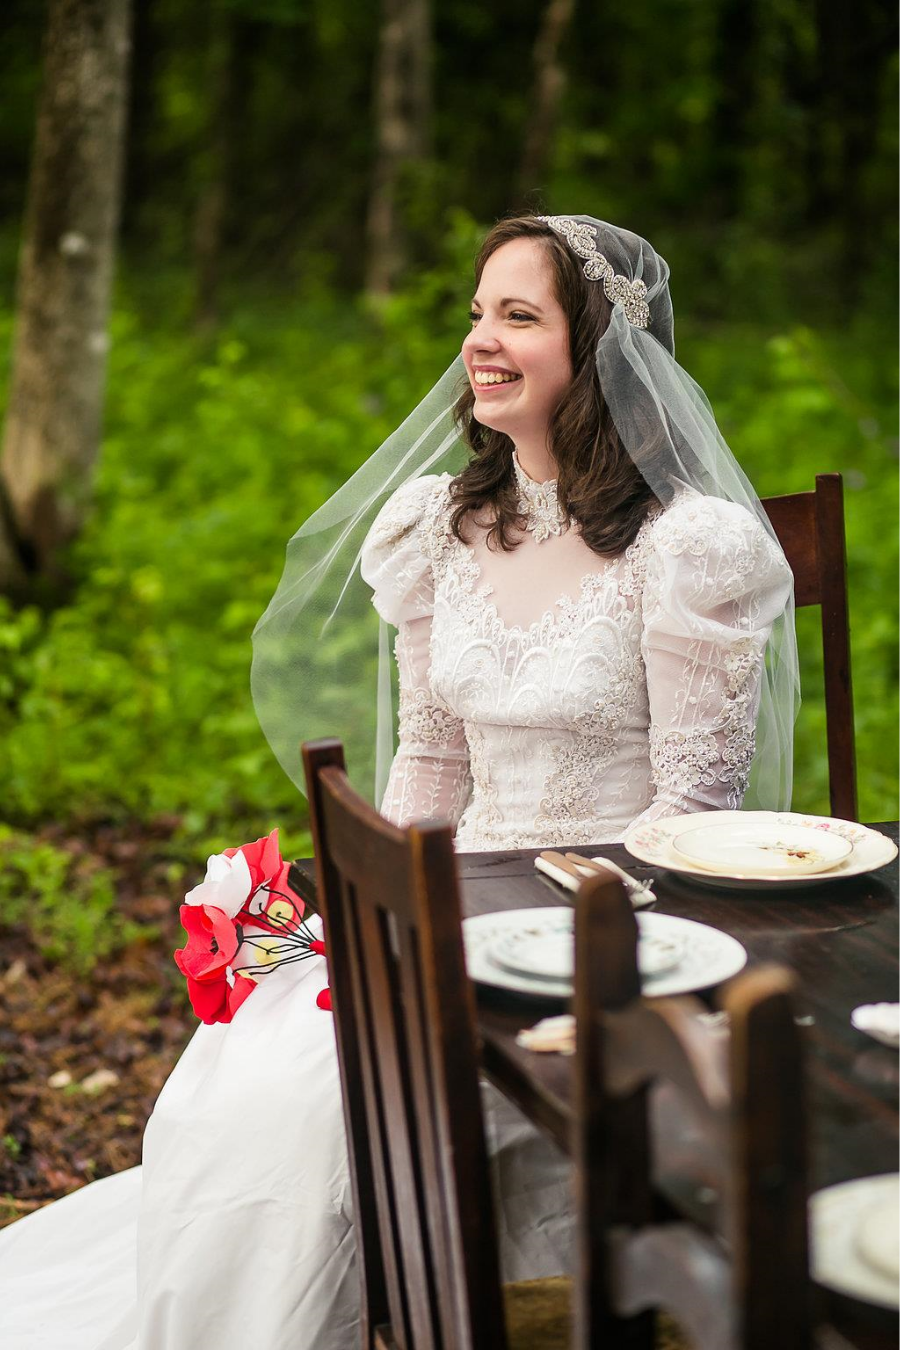 Bride Laughing.png